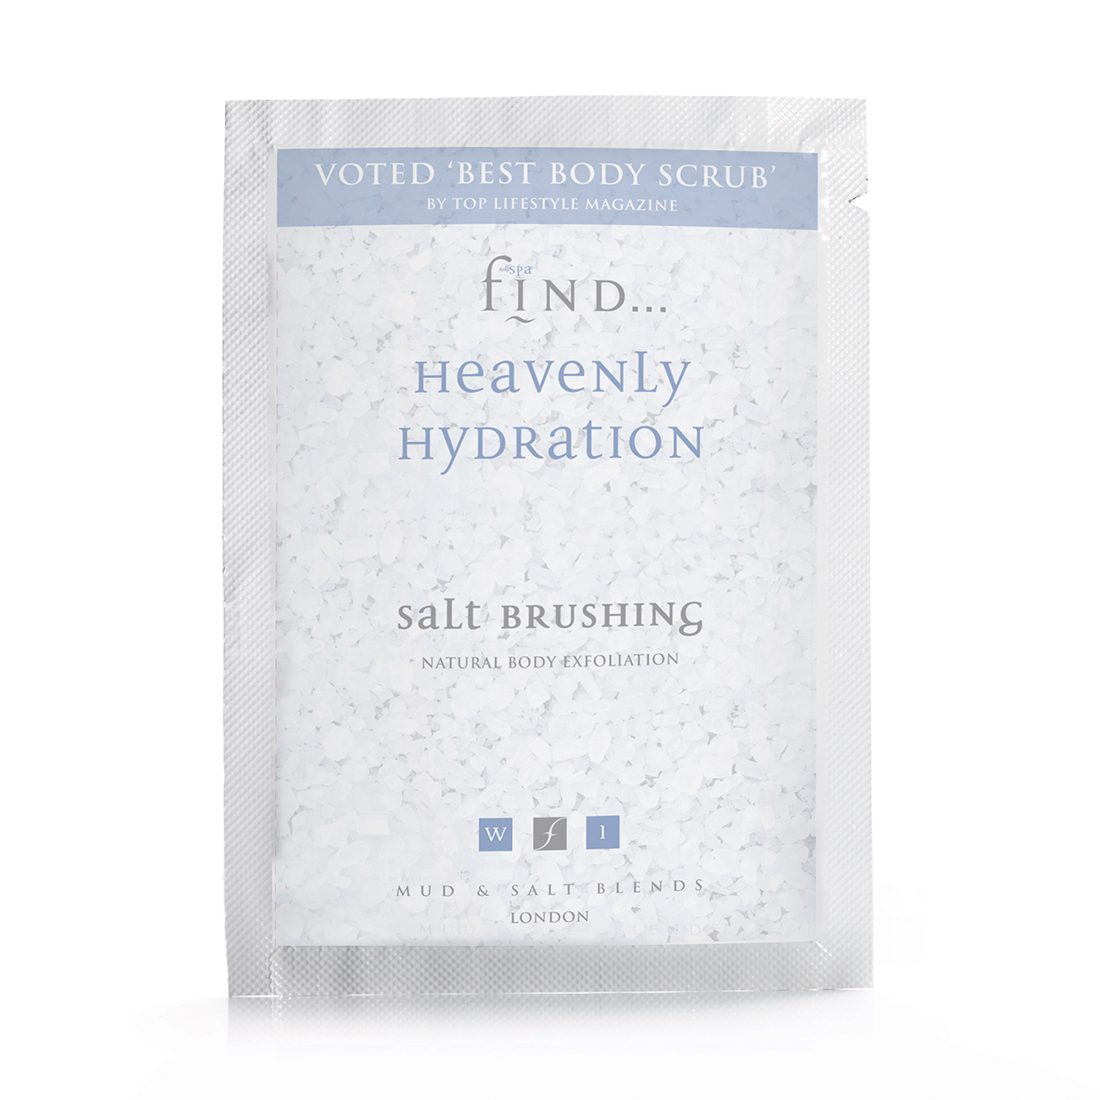 SPA FIND HEAVENLY HYDRATION SALT BRUSHING SACHET 50g